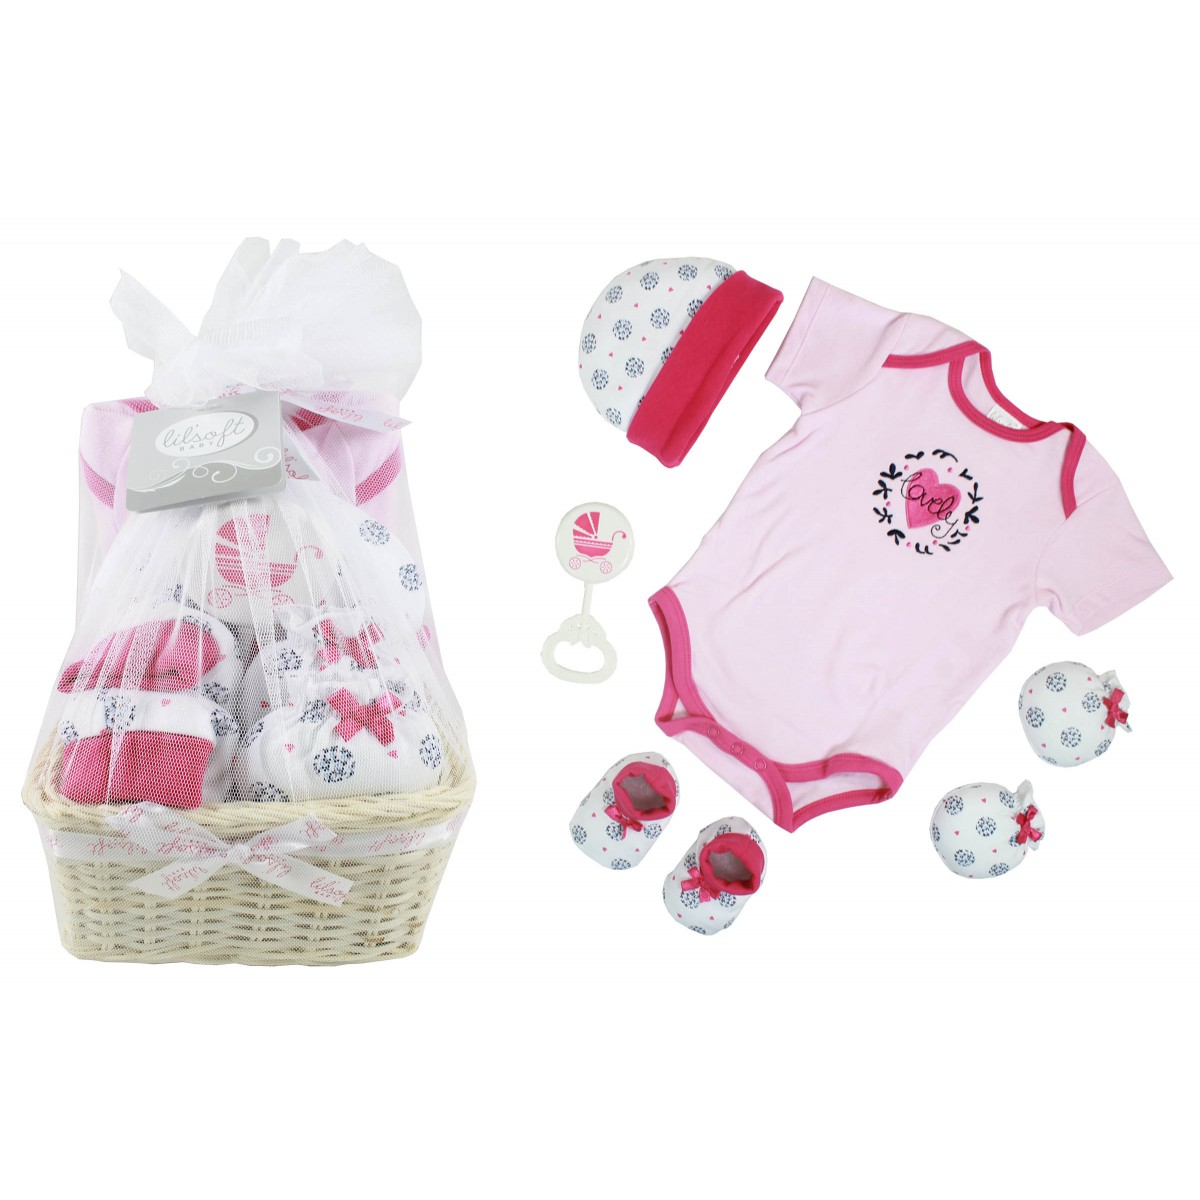 Baby Gift Sets Us : Baby gift basket pieces for sets